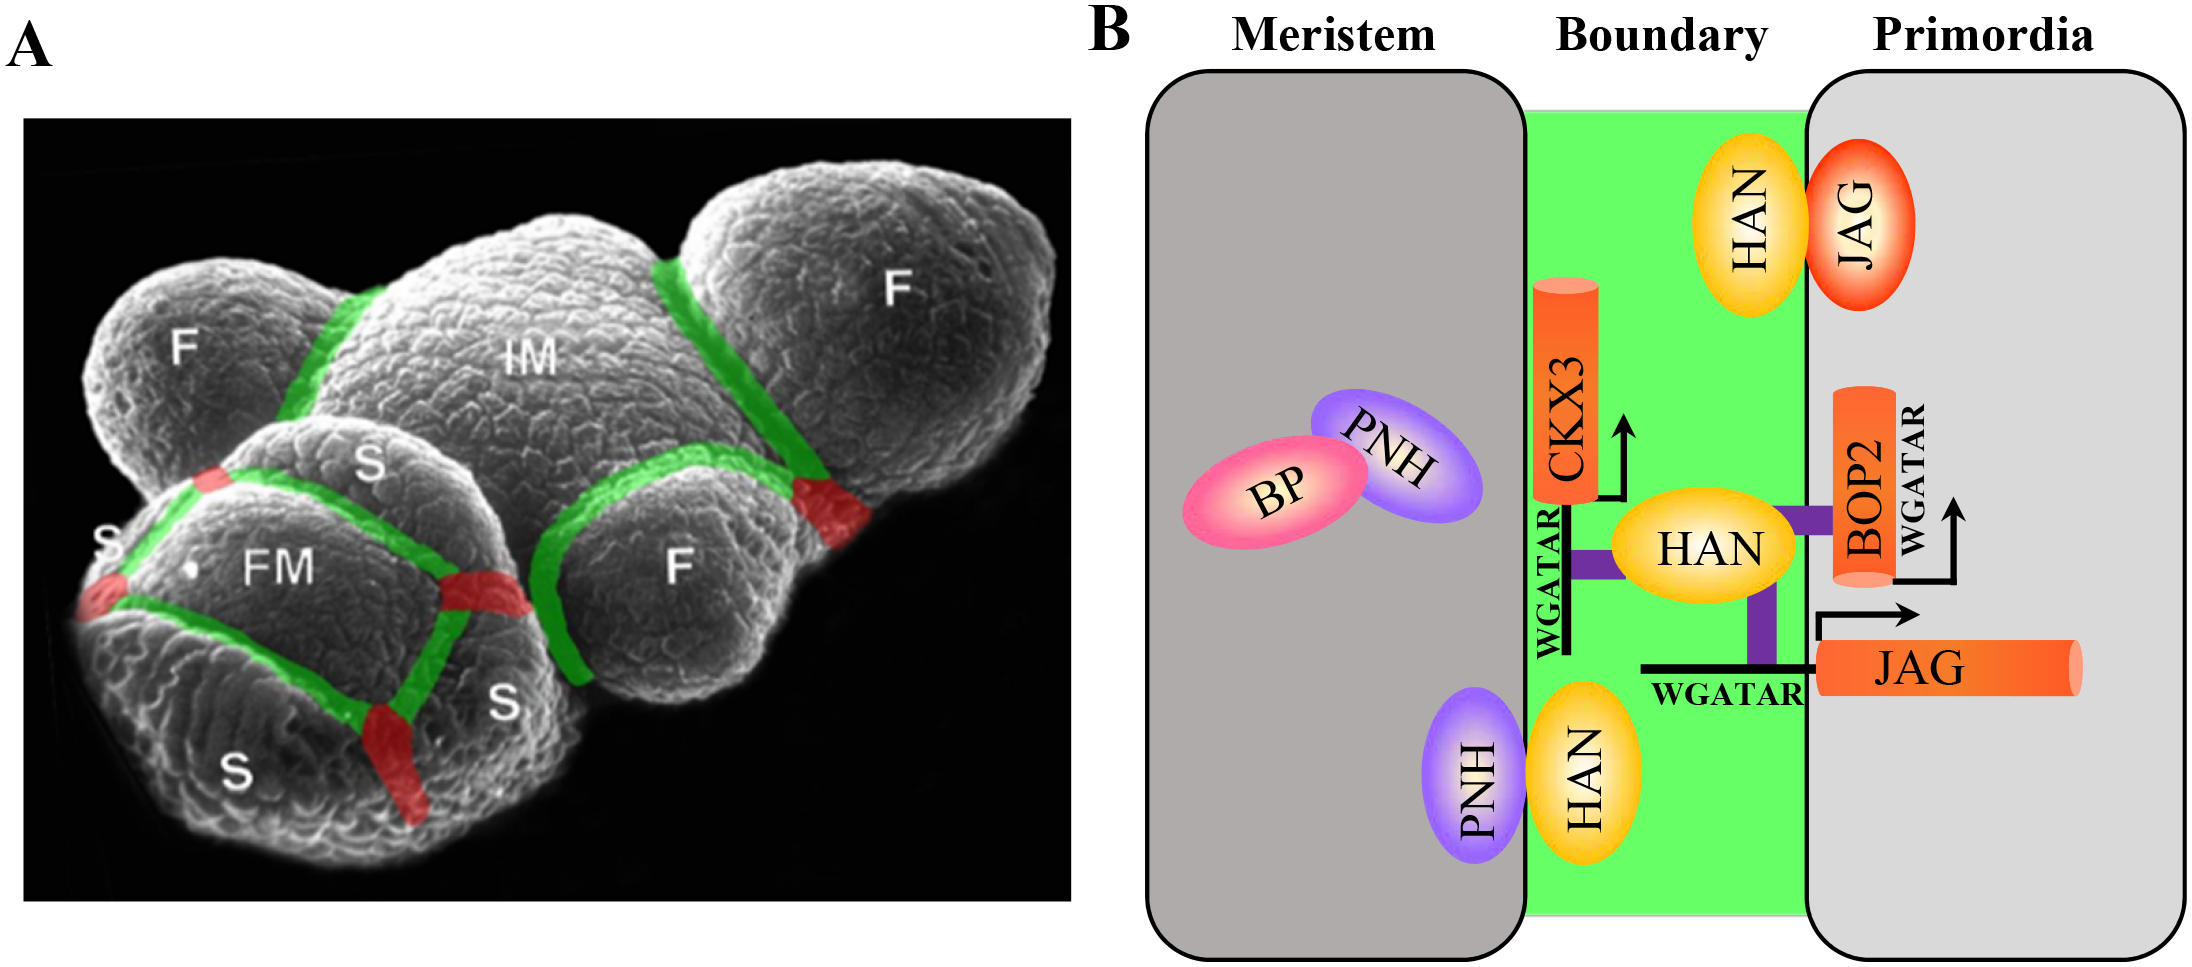 Regulatory interactions between boundary, meristem and floral organ primordia in <i>Arabidopsis</i>.